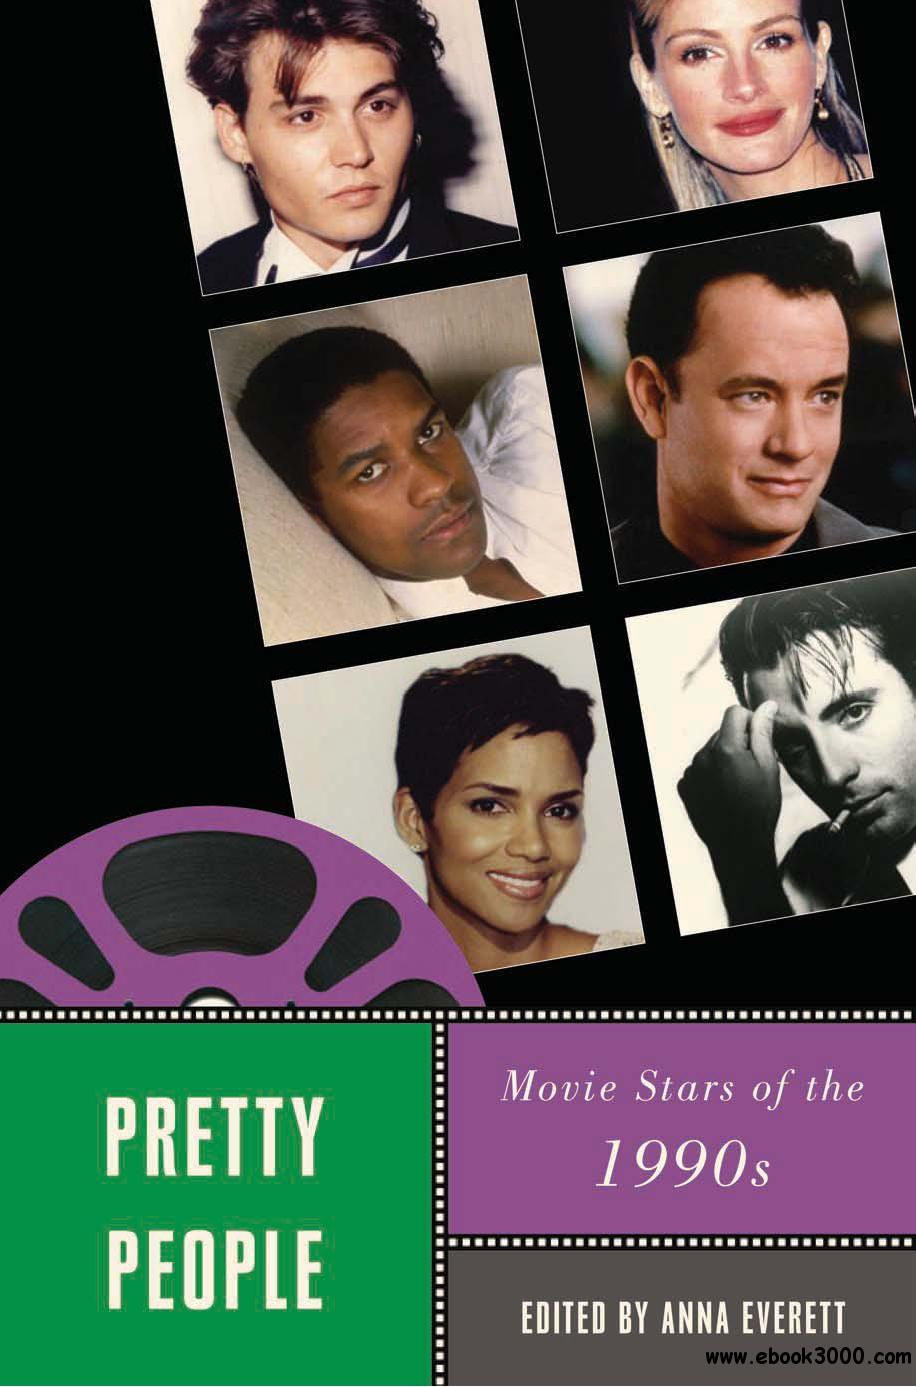 Pretty People: Movie Stars of the 1990s free download